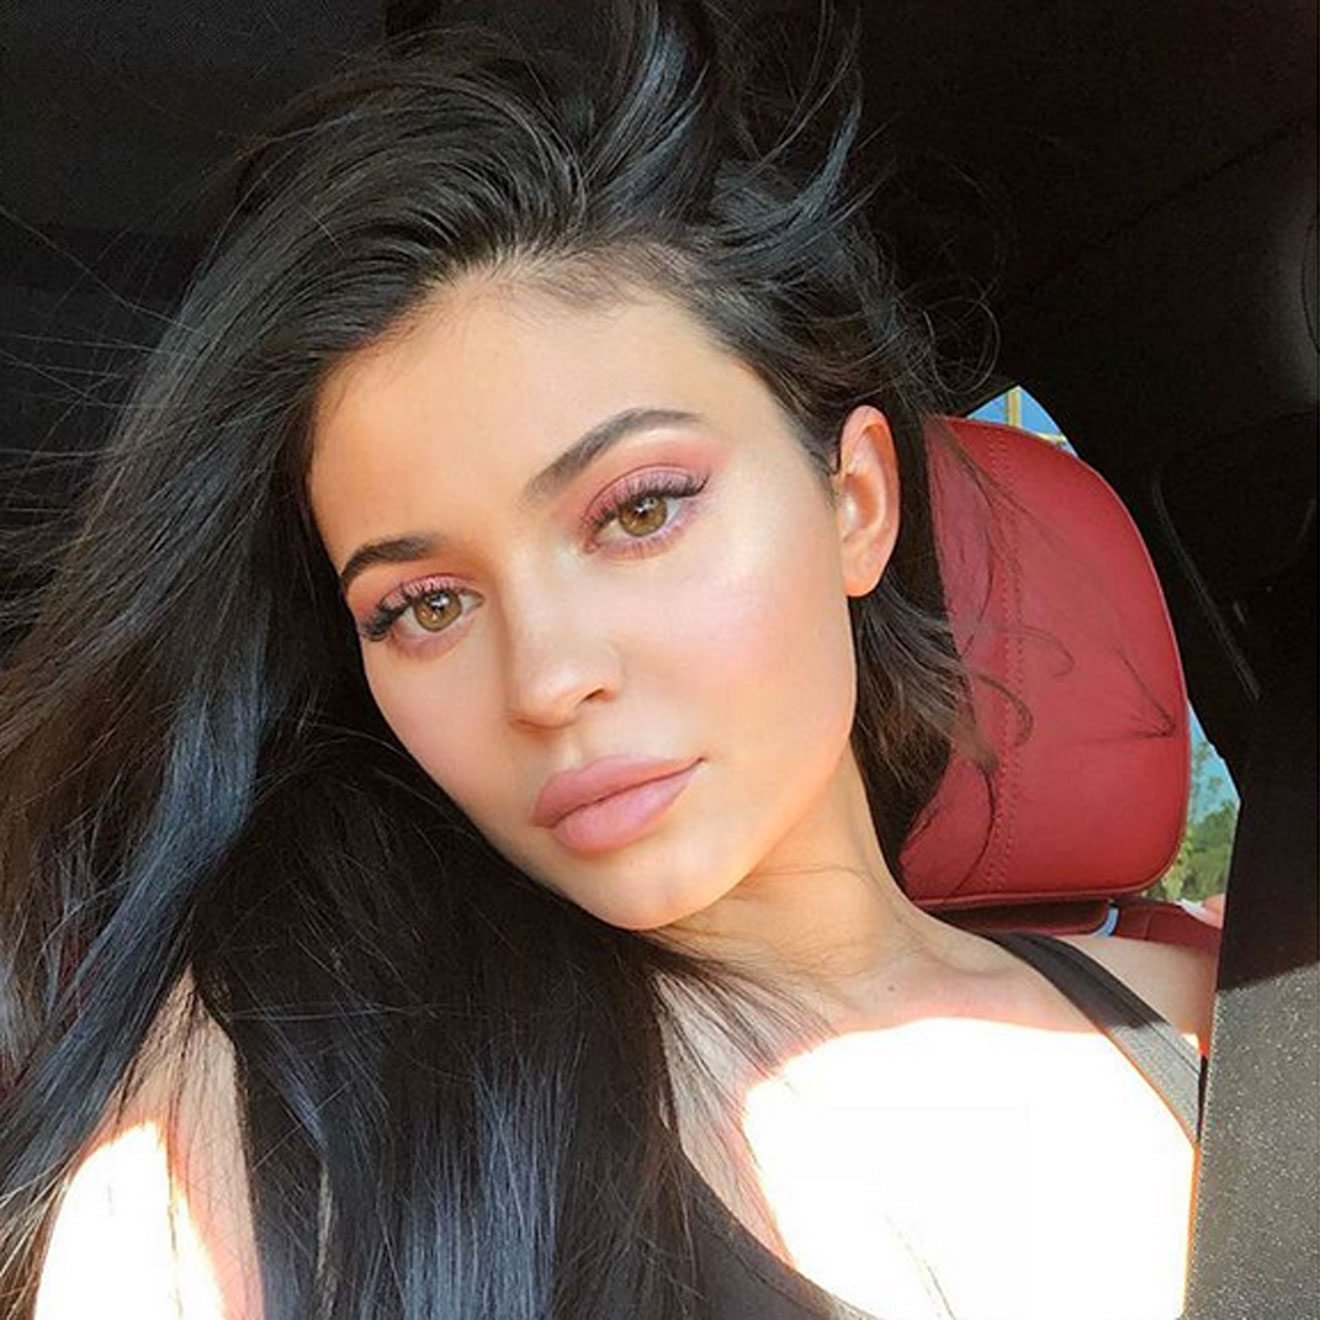 Kylie Jenner: Own insta filter!